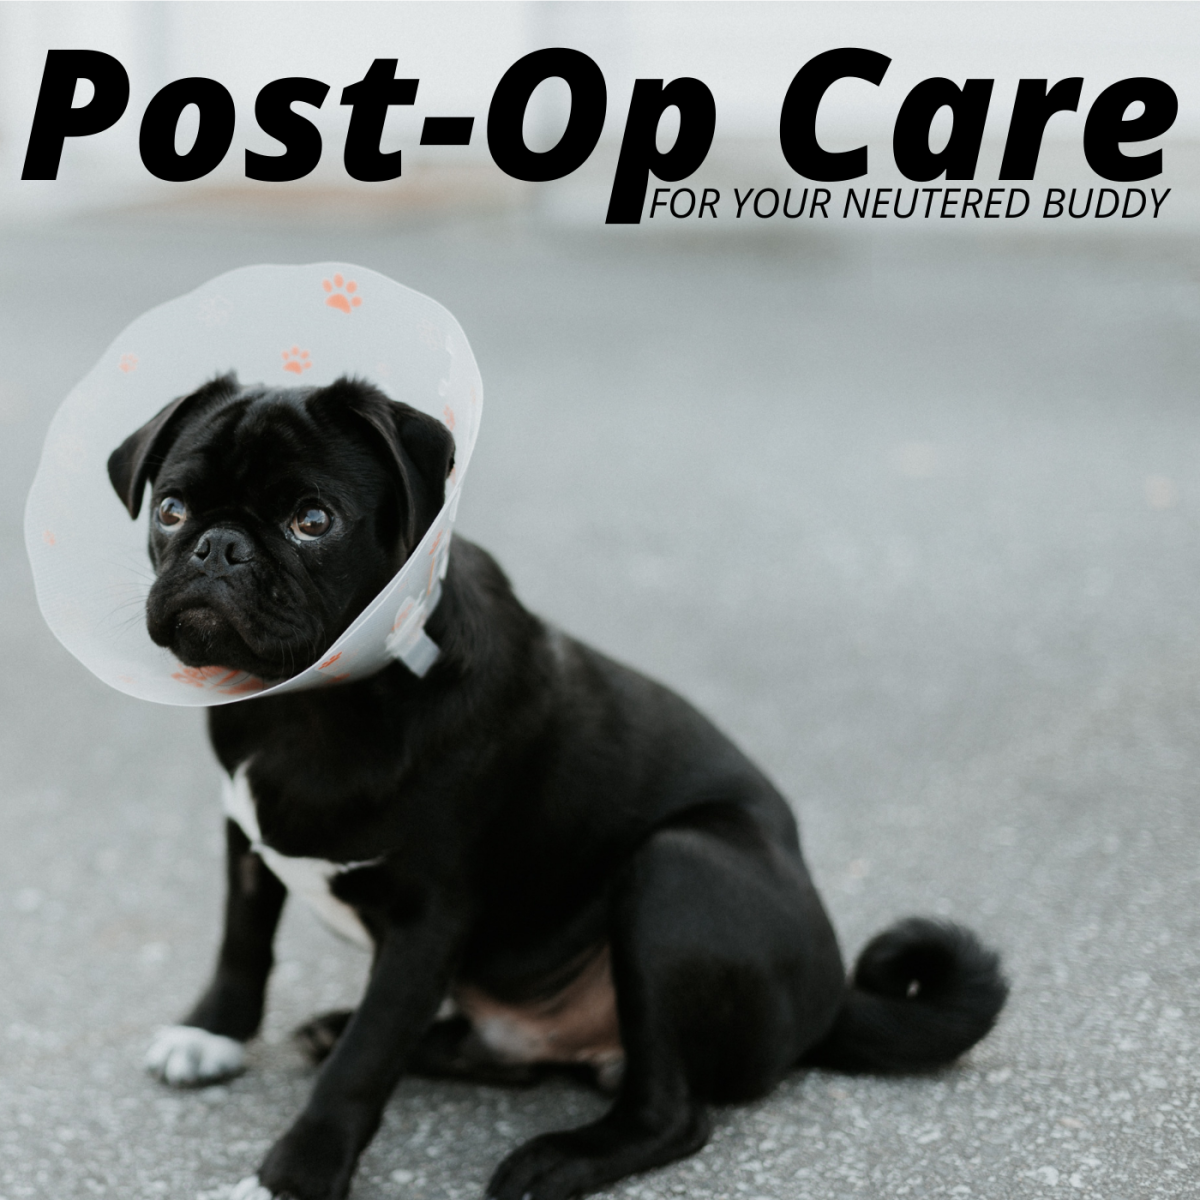 When it comes to neutering surgeries, recovery is important!